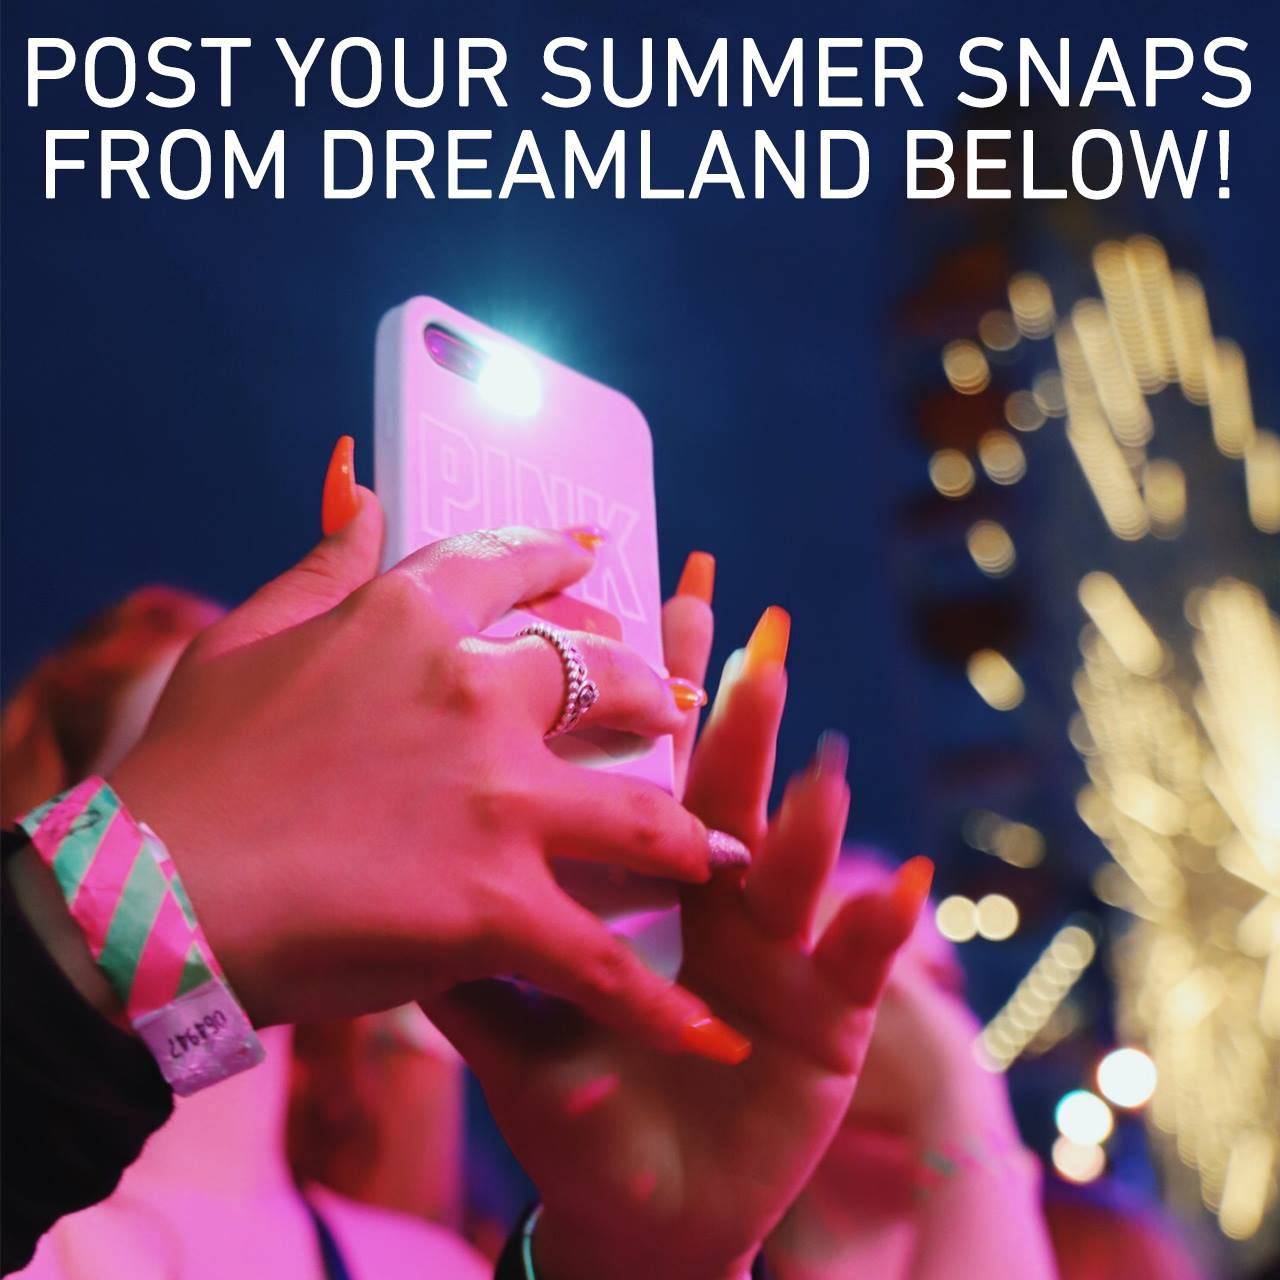 By the Sea news: Did you visit Dreamland this summer? Show us your summer snaps in the comments!